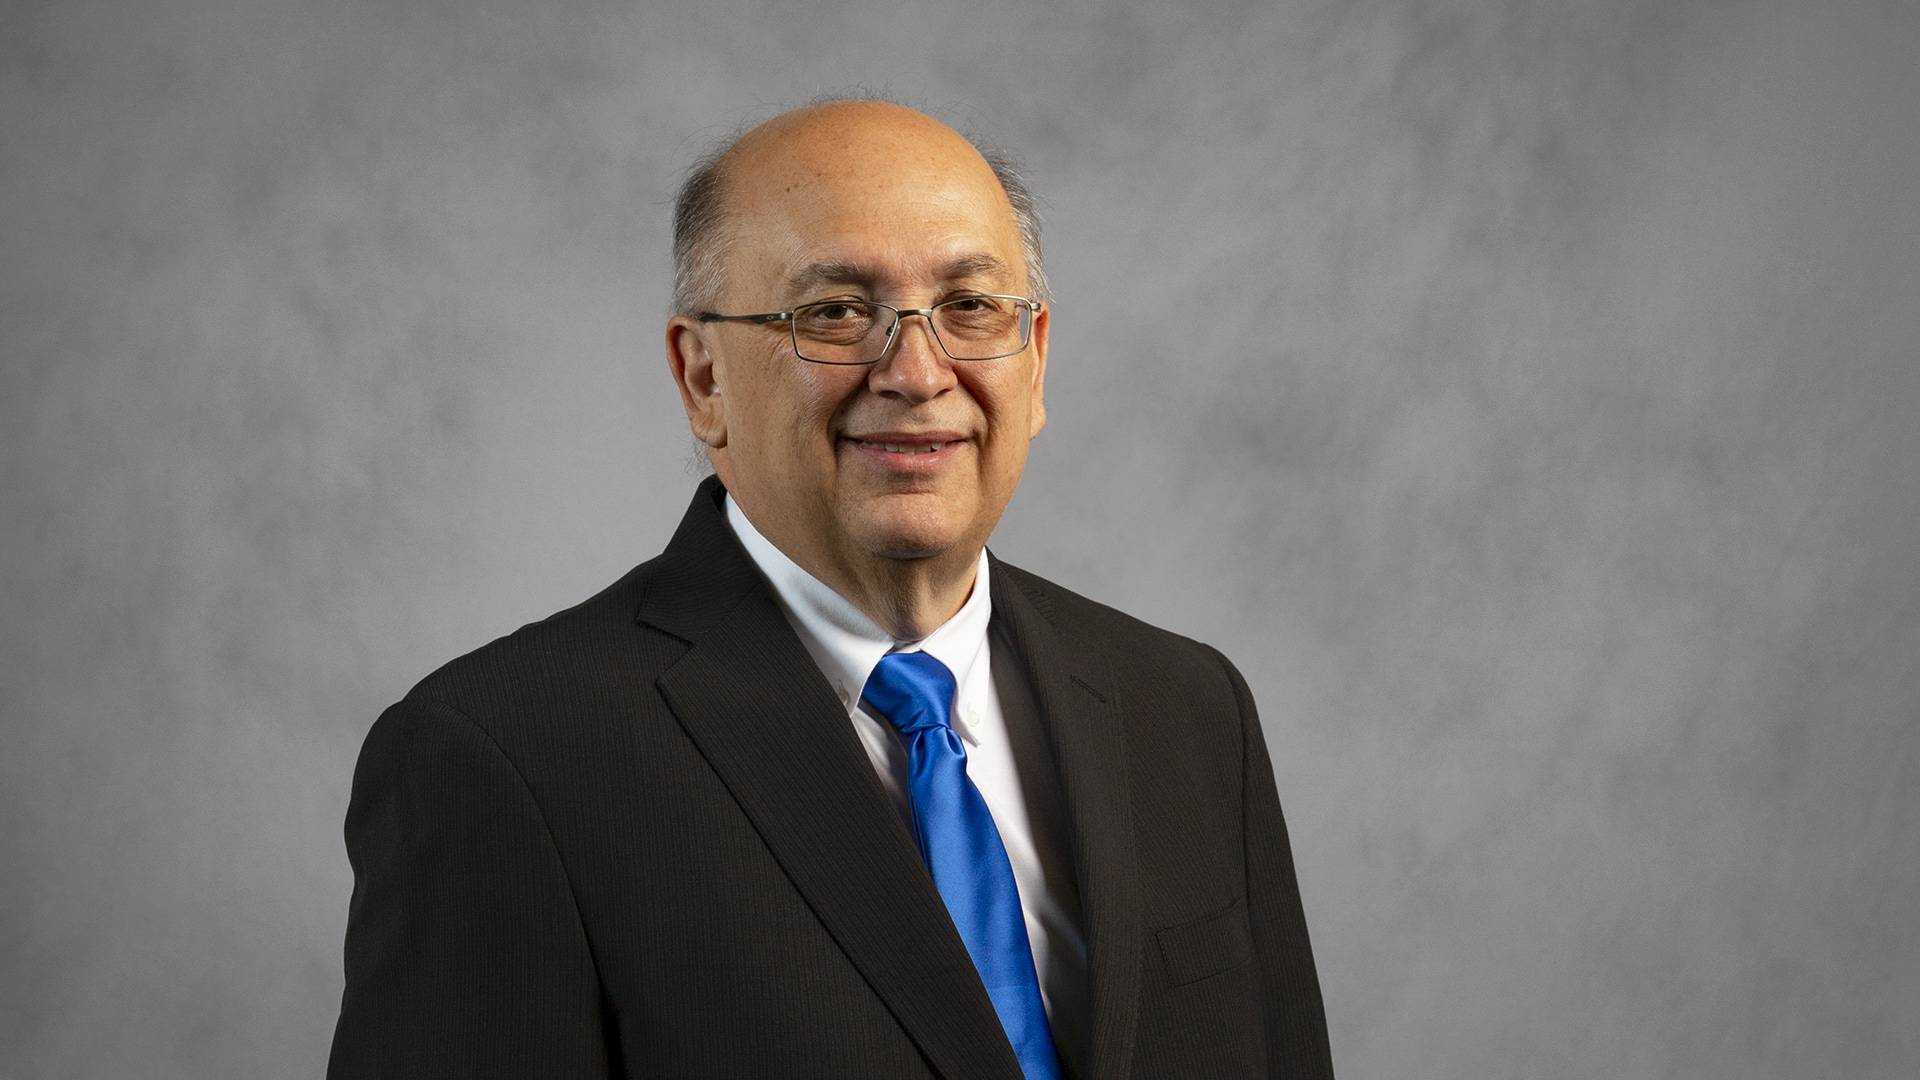 New dean's mission: build on UHCL's legacy of science and engineering